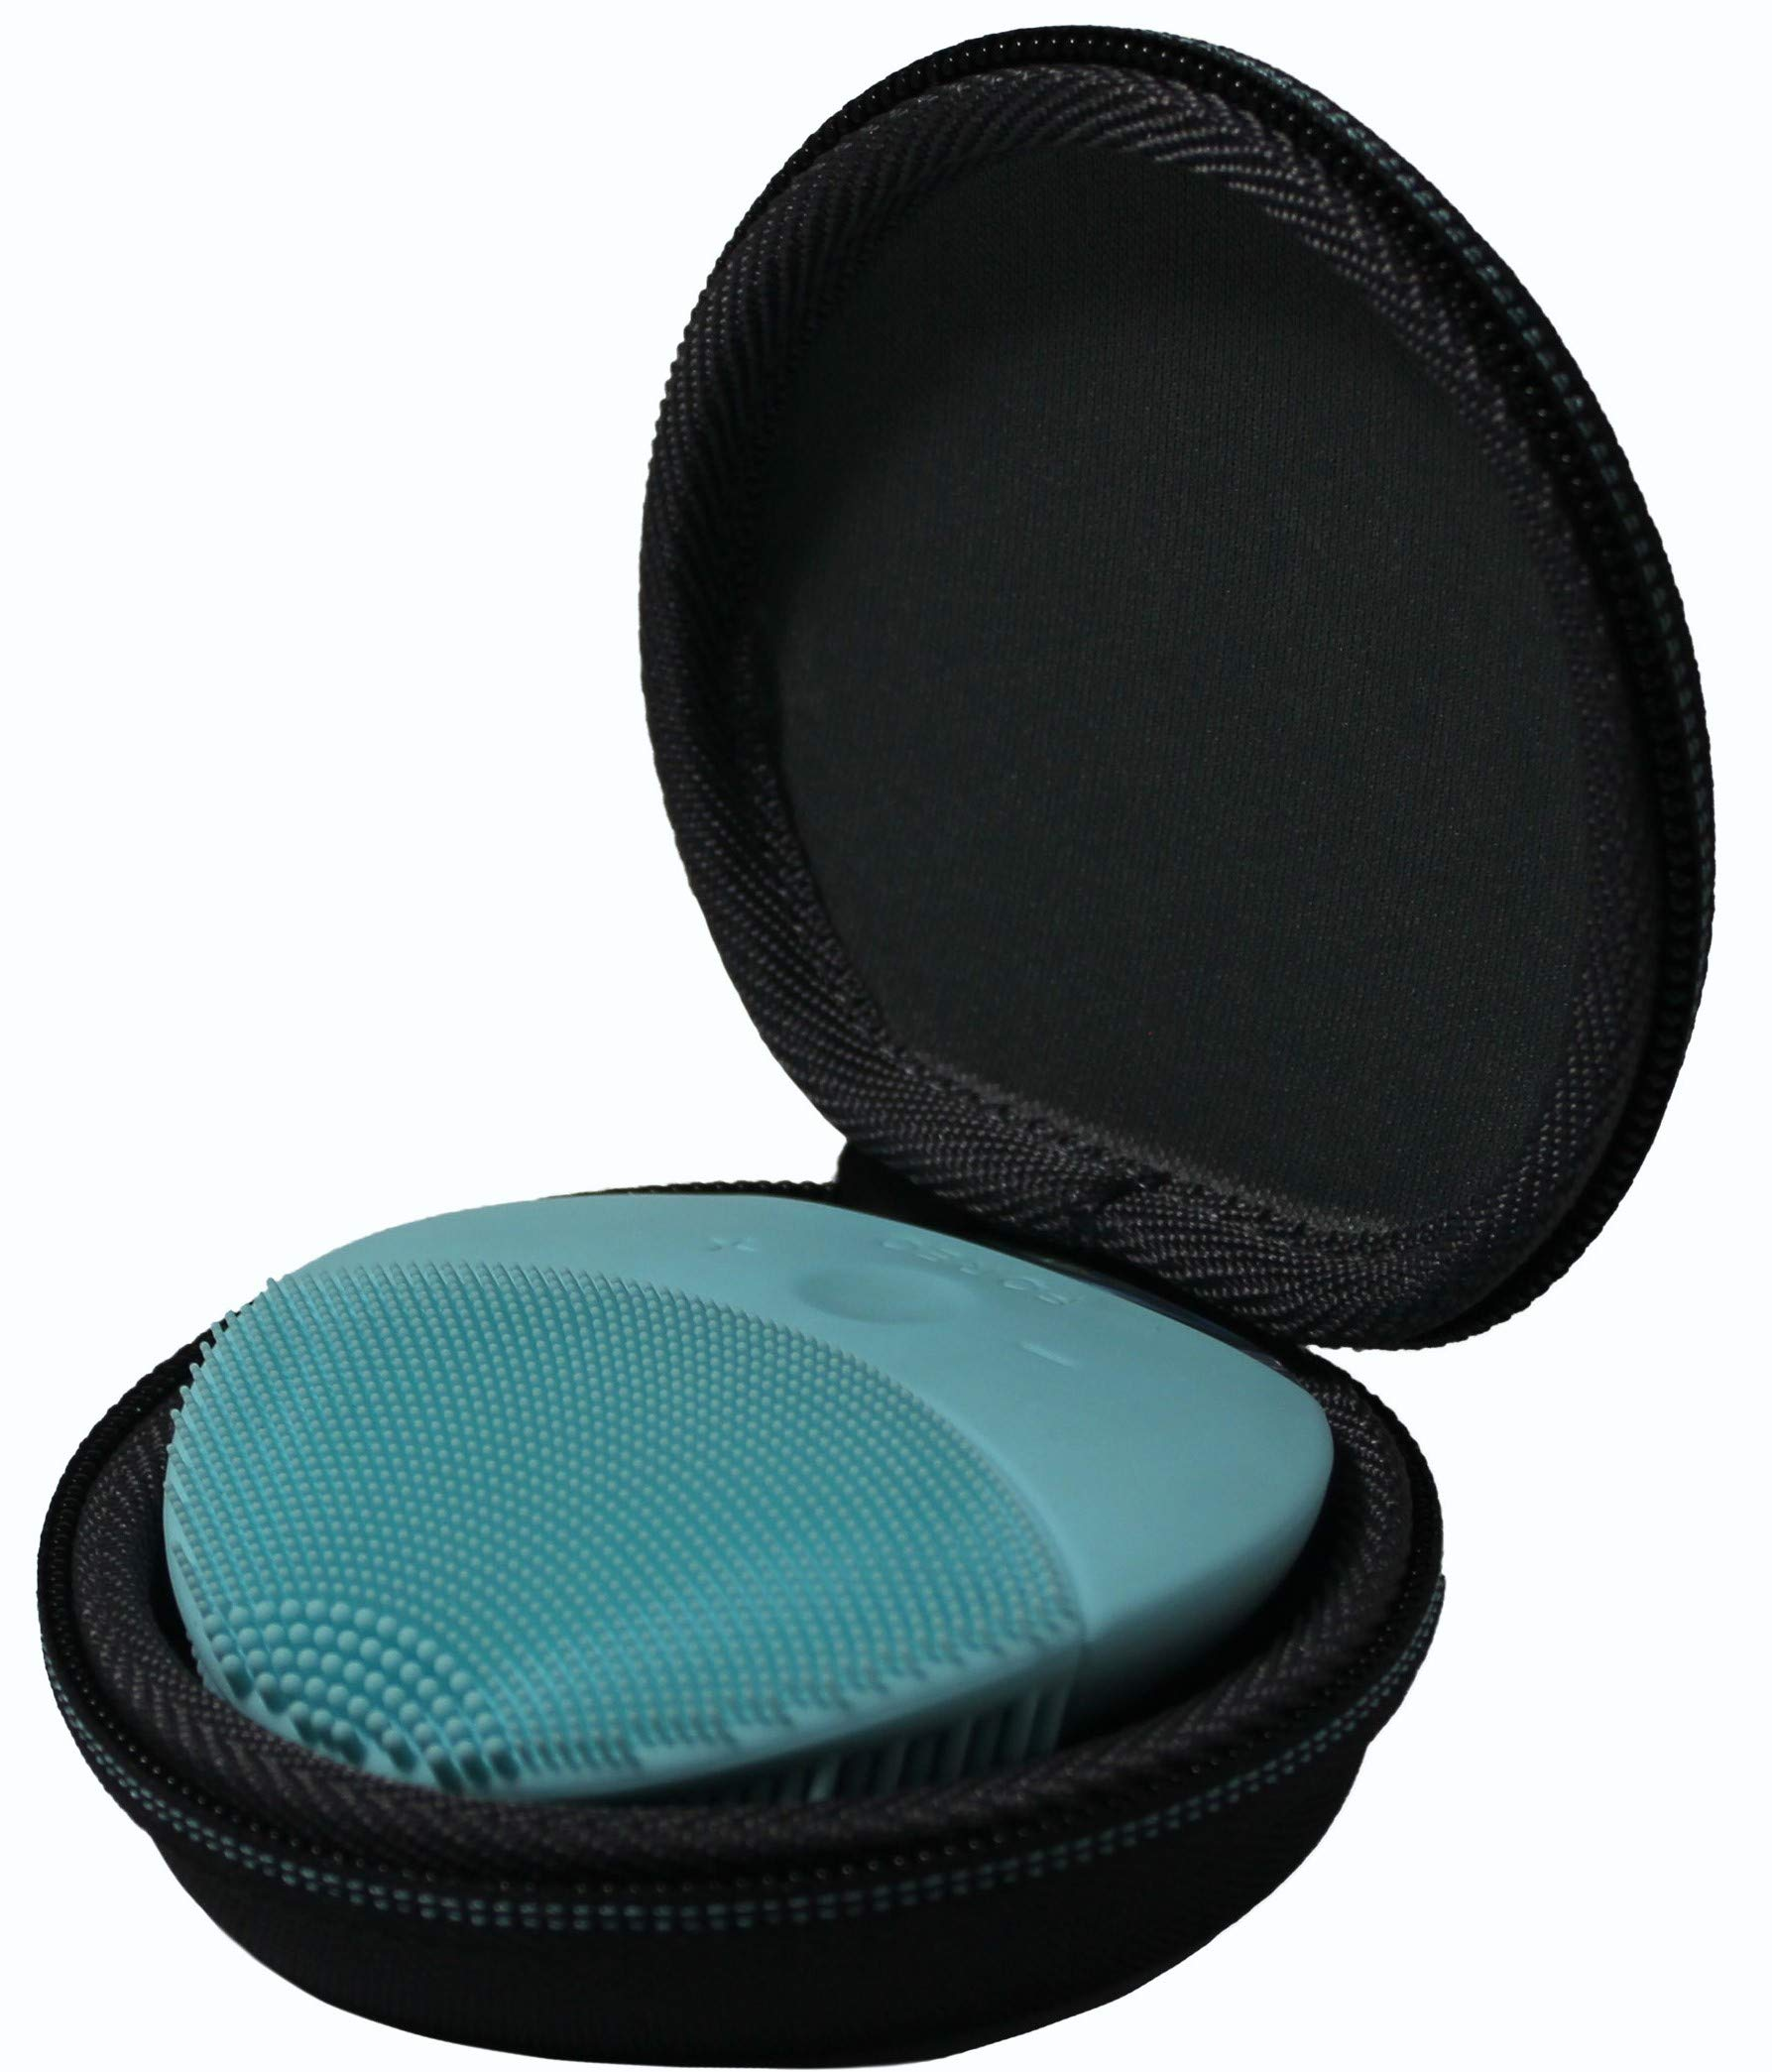 TUDIA LUNA Mini 2 Facial Brush EVA Carrying Case, Water Resistant Material Shock Absorption Storage Hard Portable Travel Case Compatible with FOREO LUNA mini 2 Facial Cleansing Brush